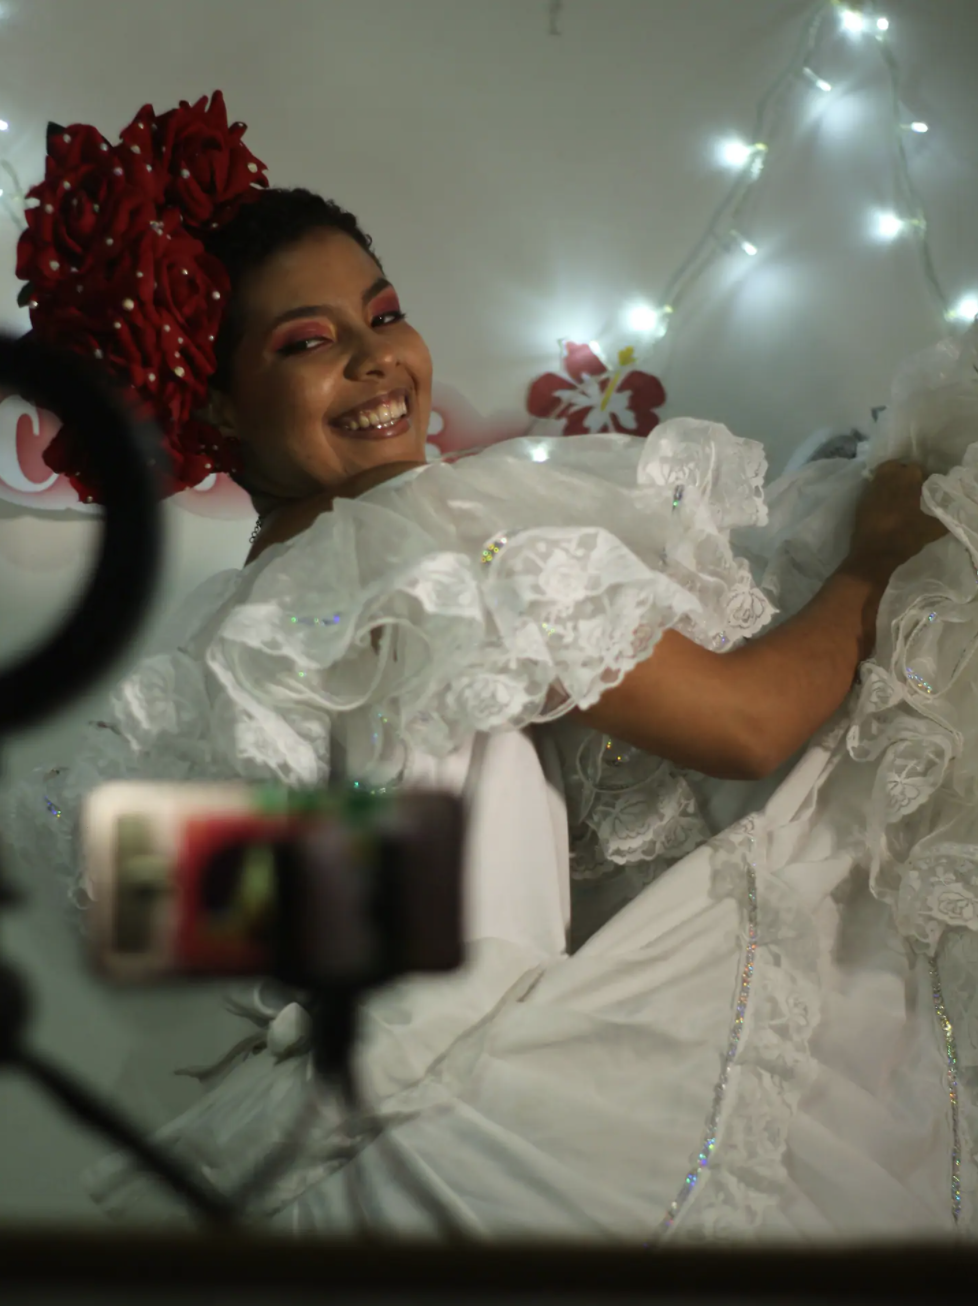 A woman in traditional white, swishy dress and rose hair piece smiles and lifts up her skirts in a dance motion to a camera